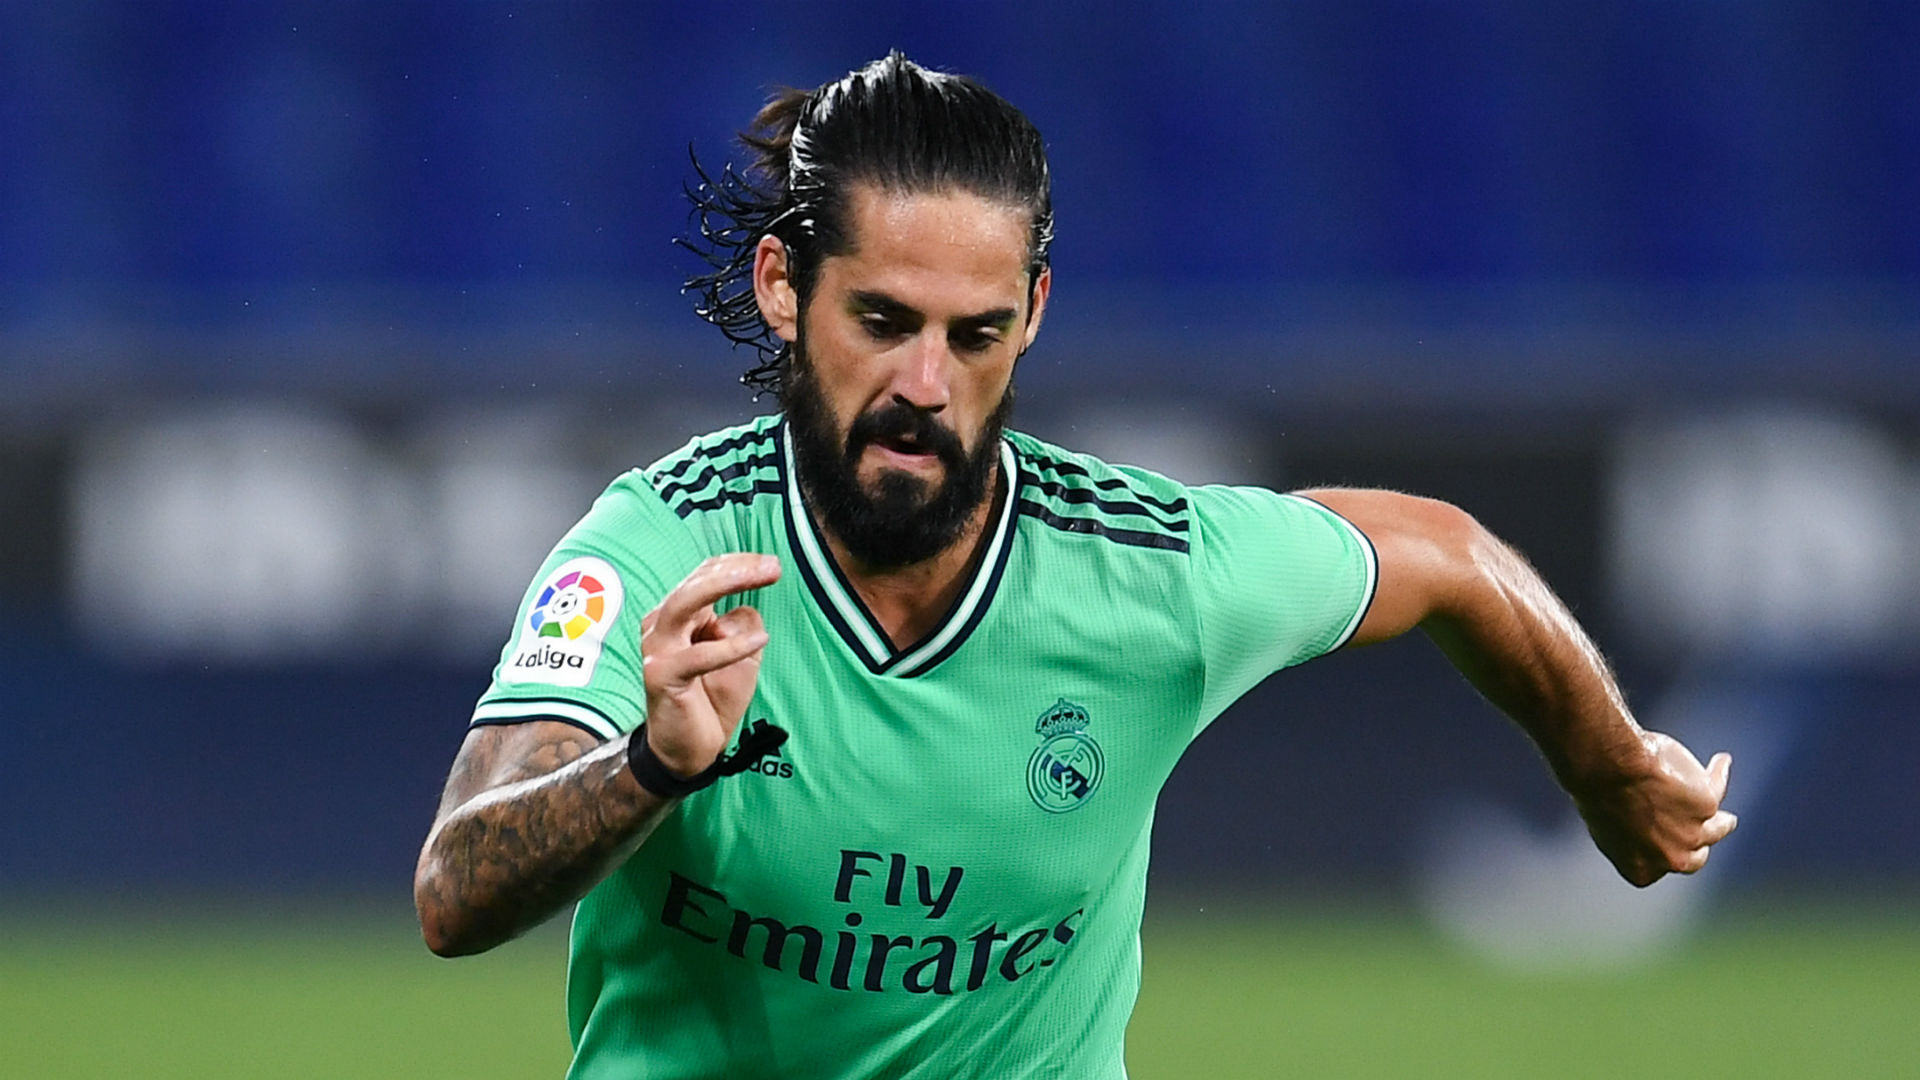 Isco 'wants to try another league' as January transfer talk builds around Real Madrid outcast